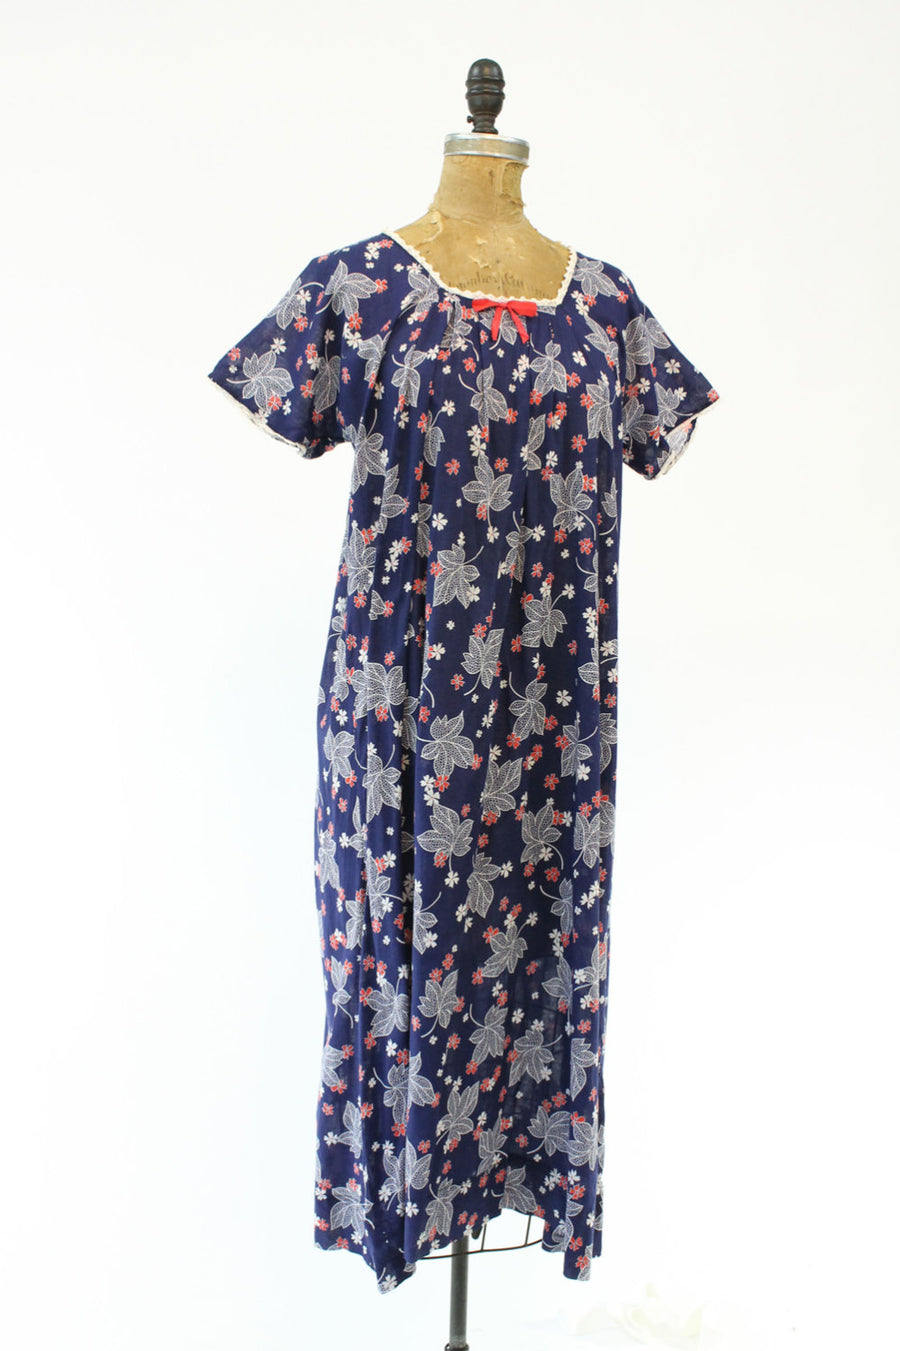 1930s leaf novelty print dress large | vintage cotton dress | new in